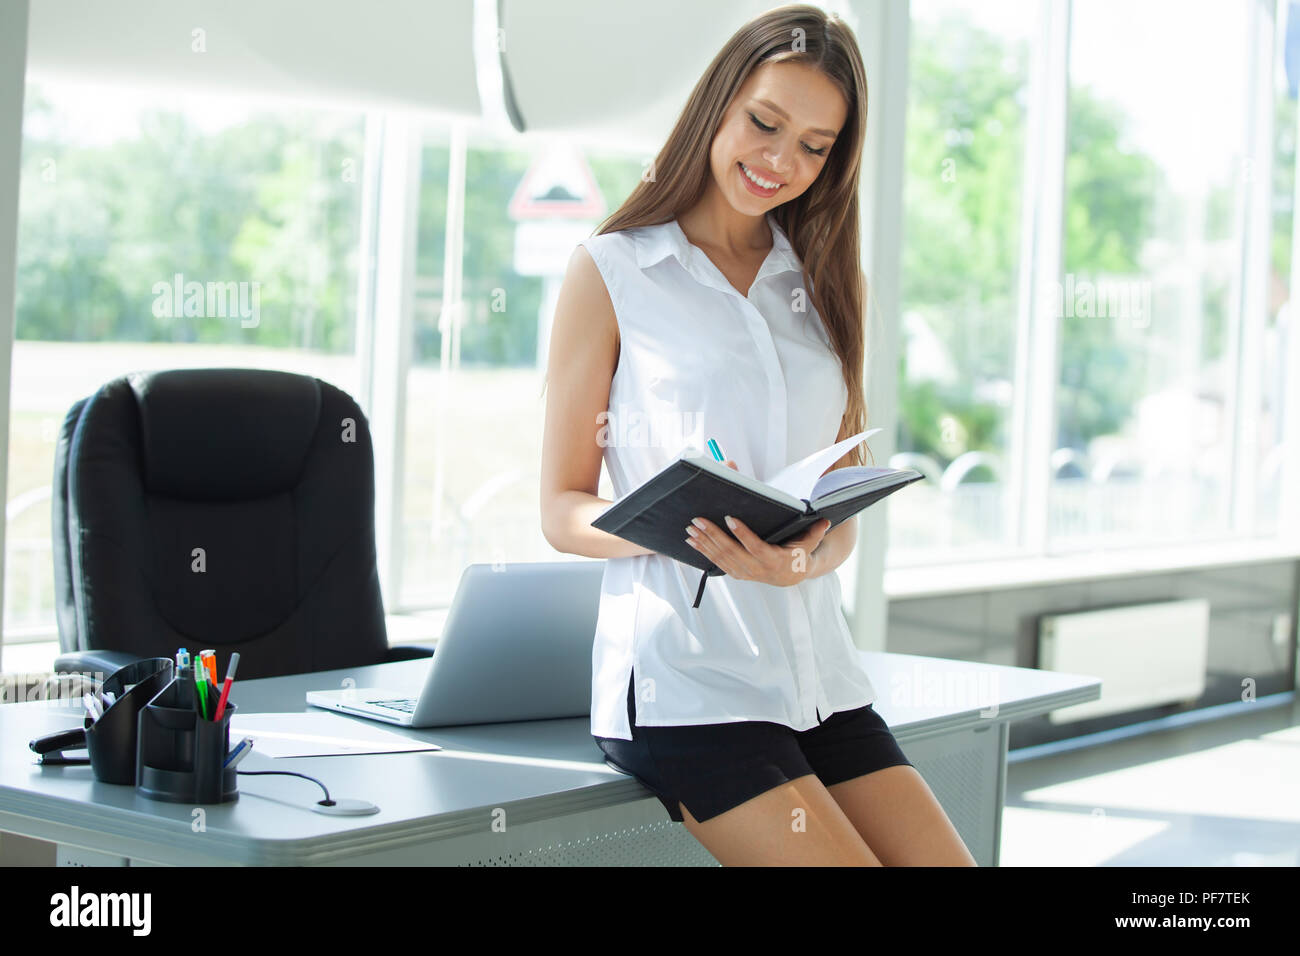 Business woman working in office with documents. - Stock Image